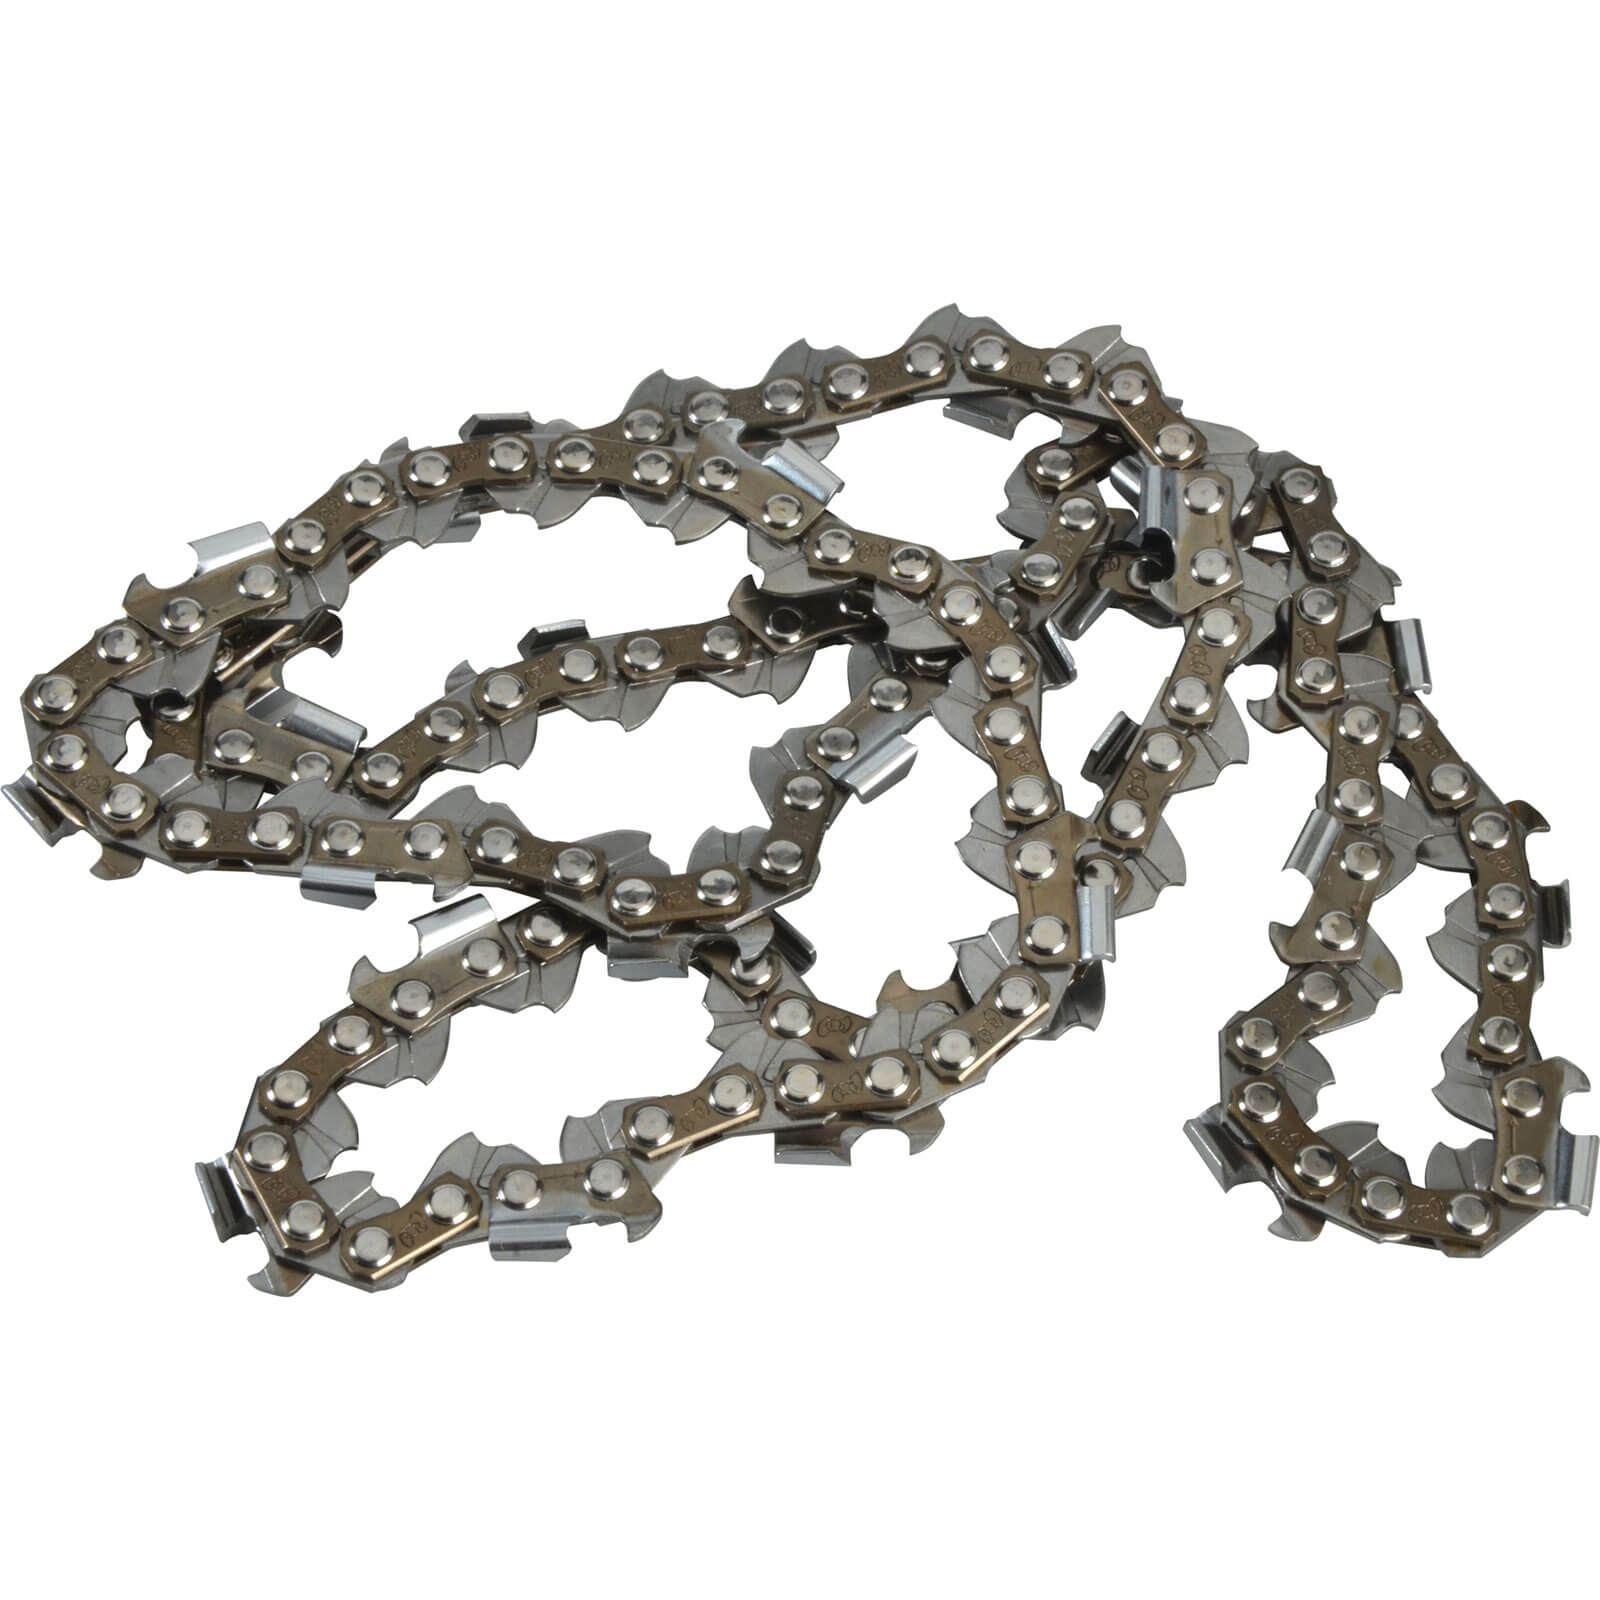 Image of ALM CH062 Replacement Chainsaw Chain Fits Saws with a 46cm Bar & 62 Drive Links 460mm